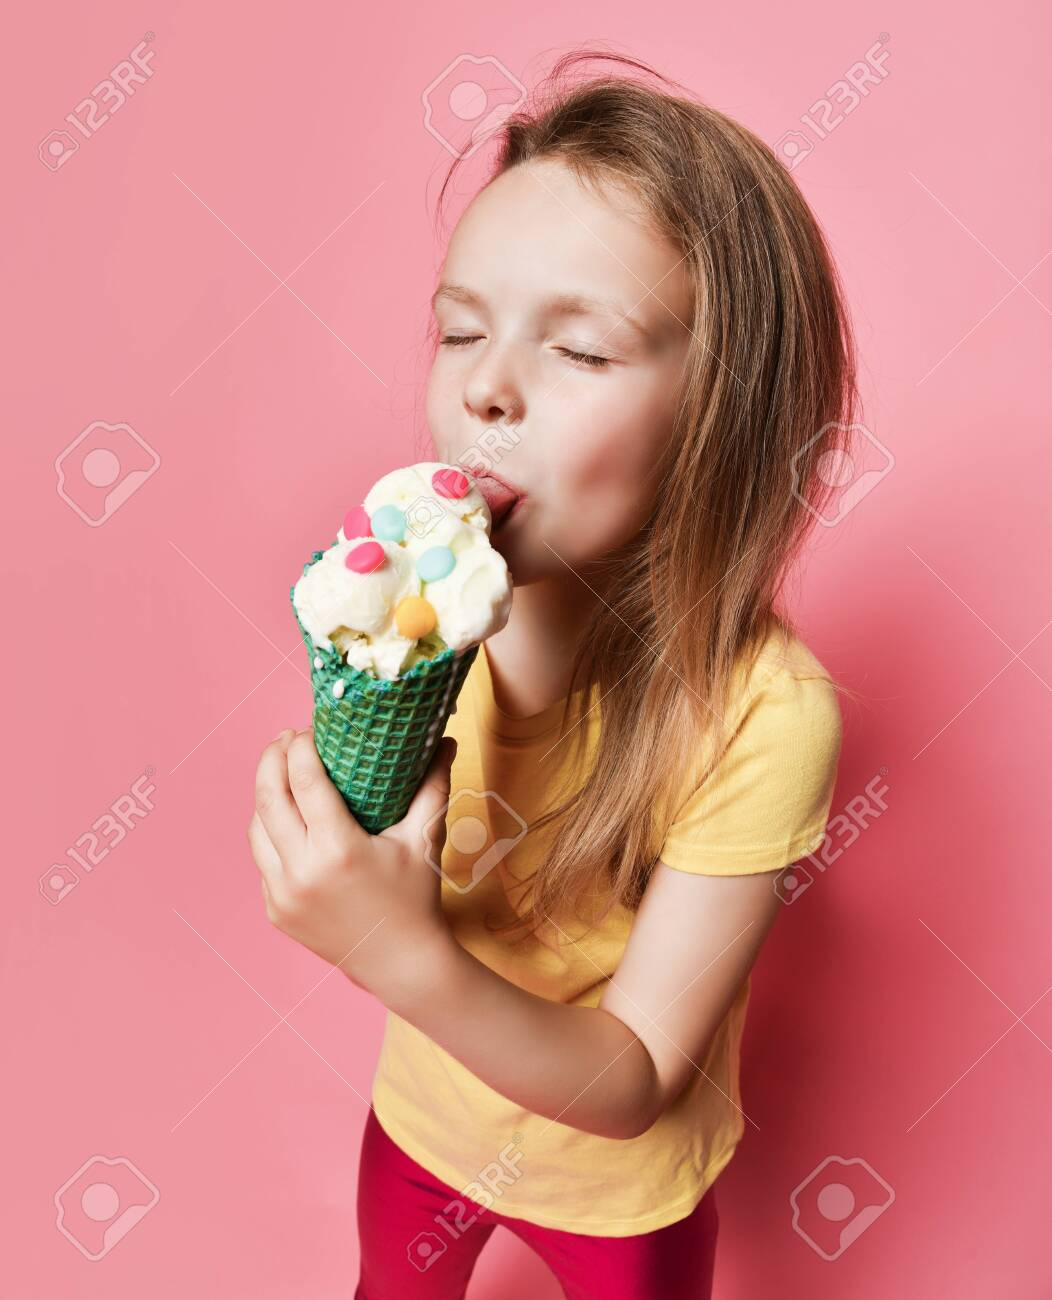 Portrait of kid girl in yellow t-shirt and pink glossy leggings relishing licking with her eyes closed eating big vanilla ice cream with candies in waffles cone. Top view - 153434884